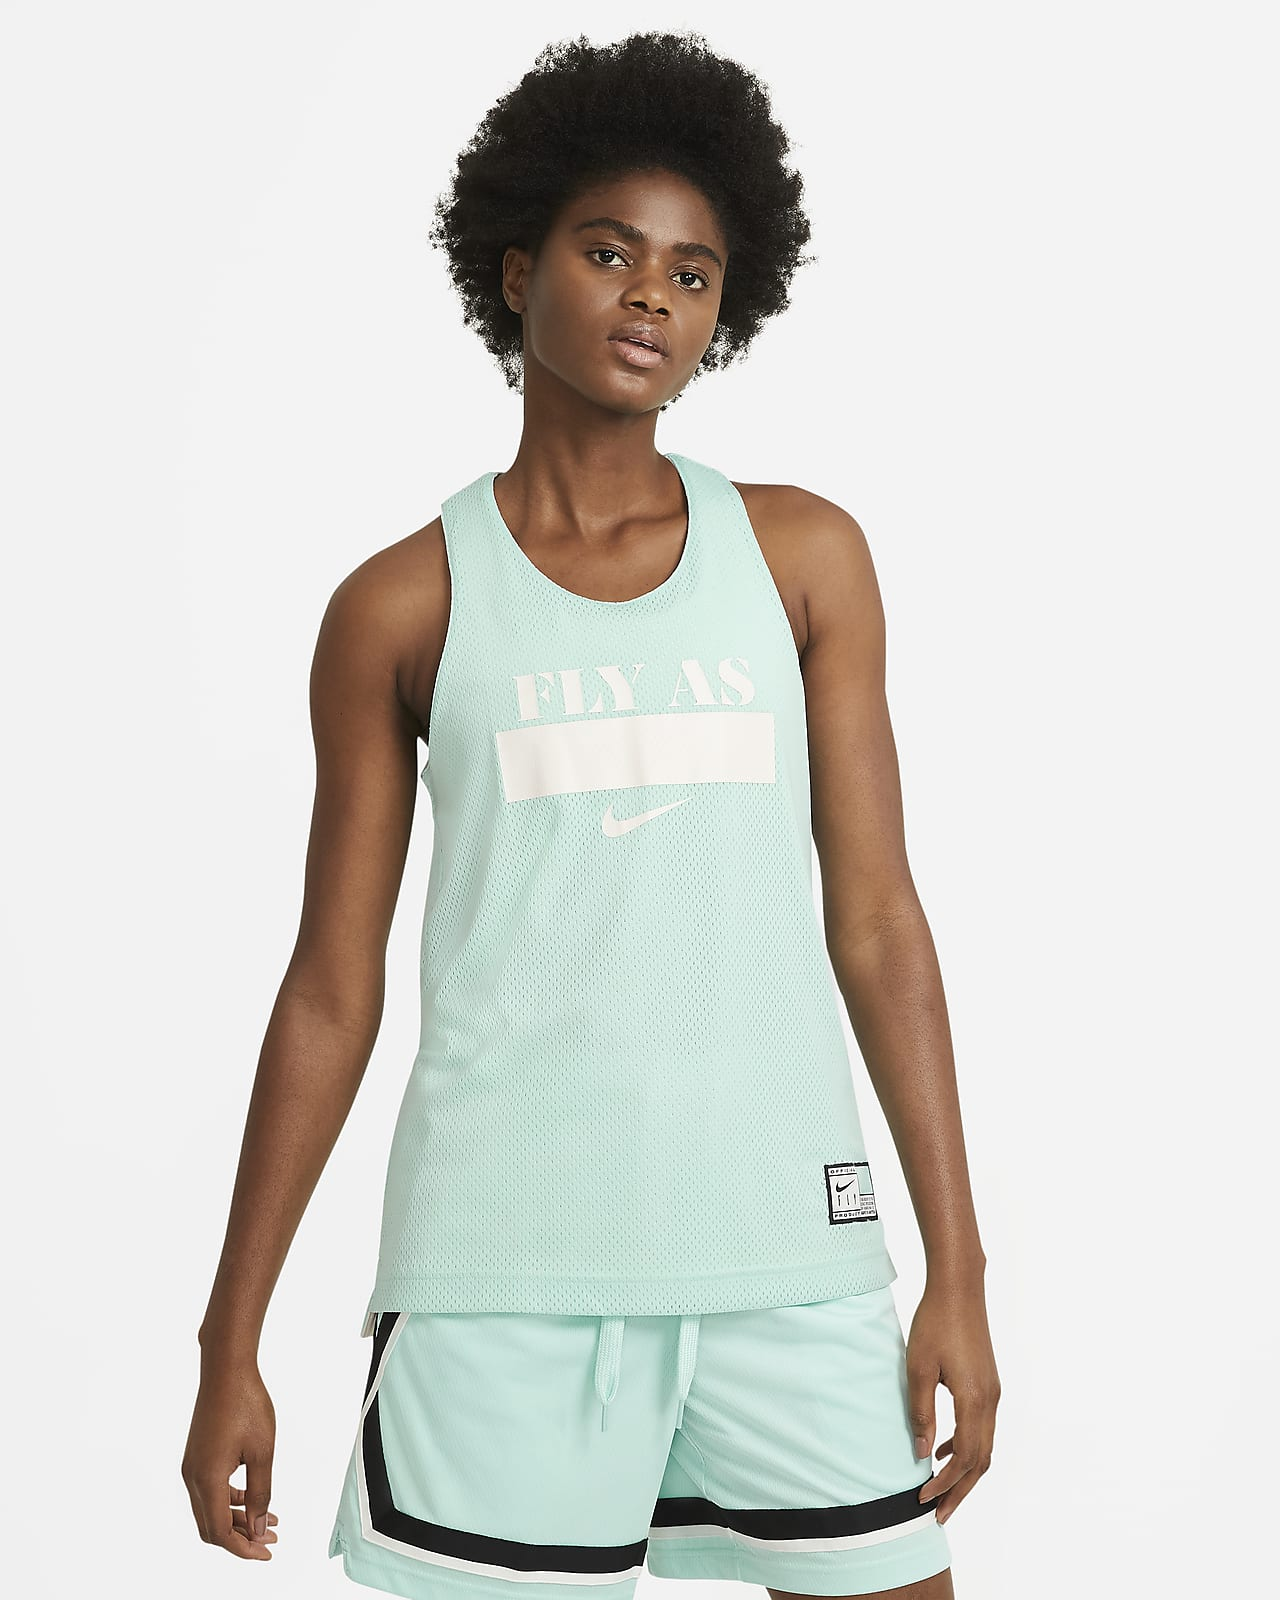 Nike Essential Fly wendbares Basketball-Trkot für Damen